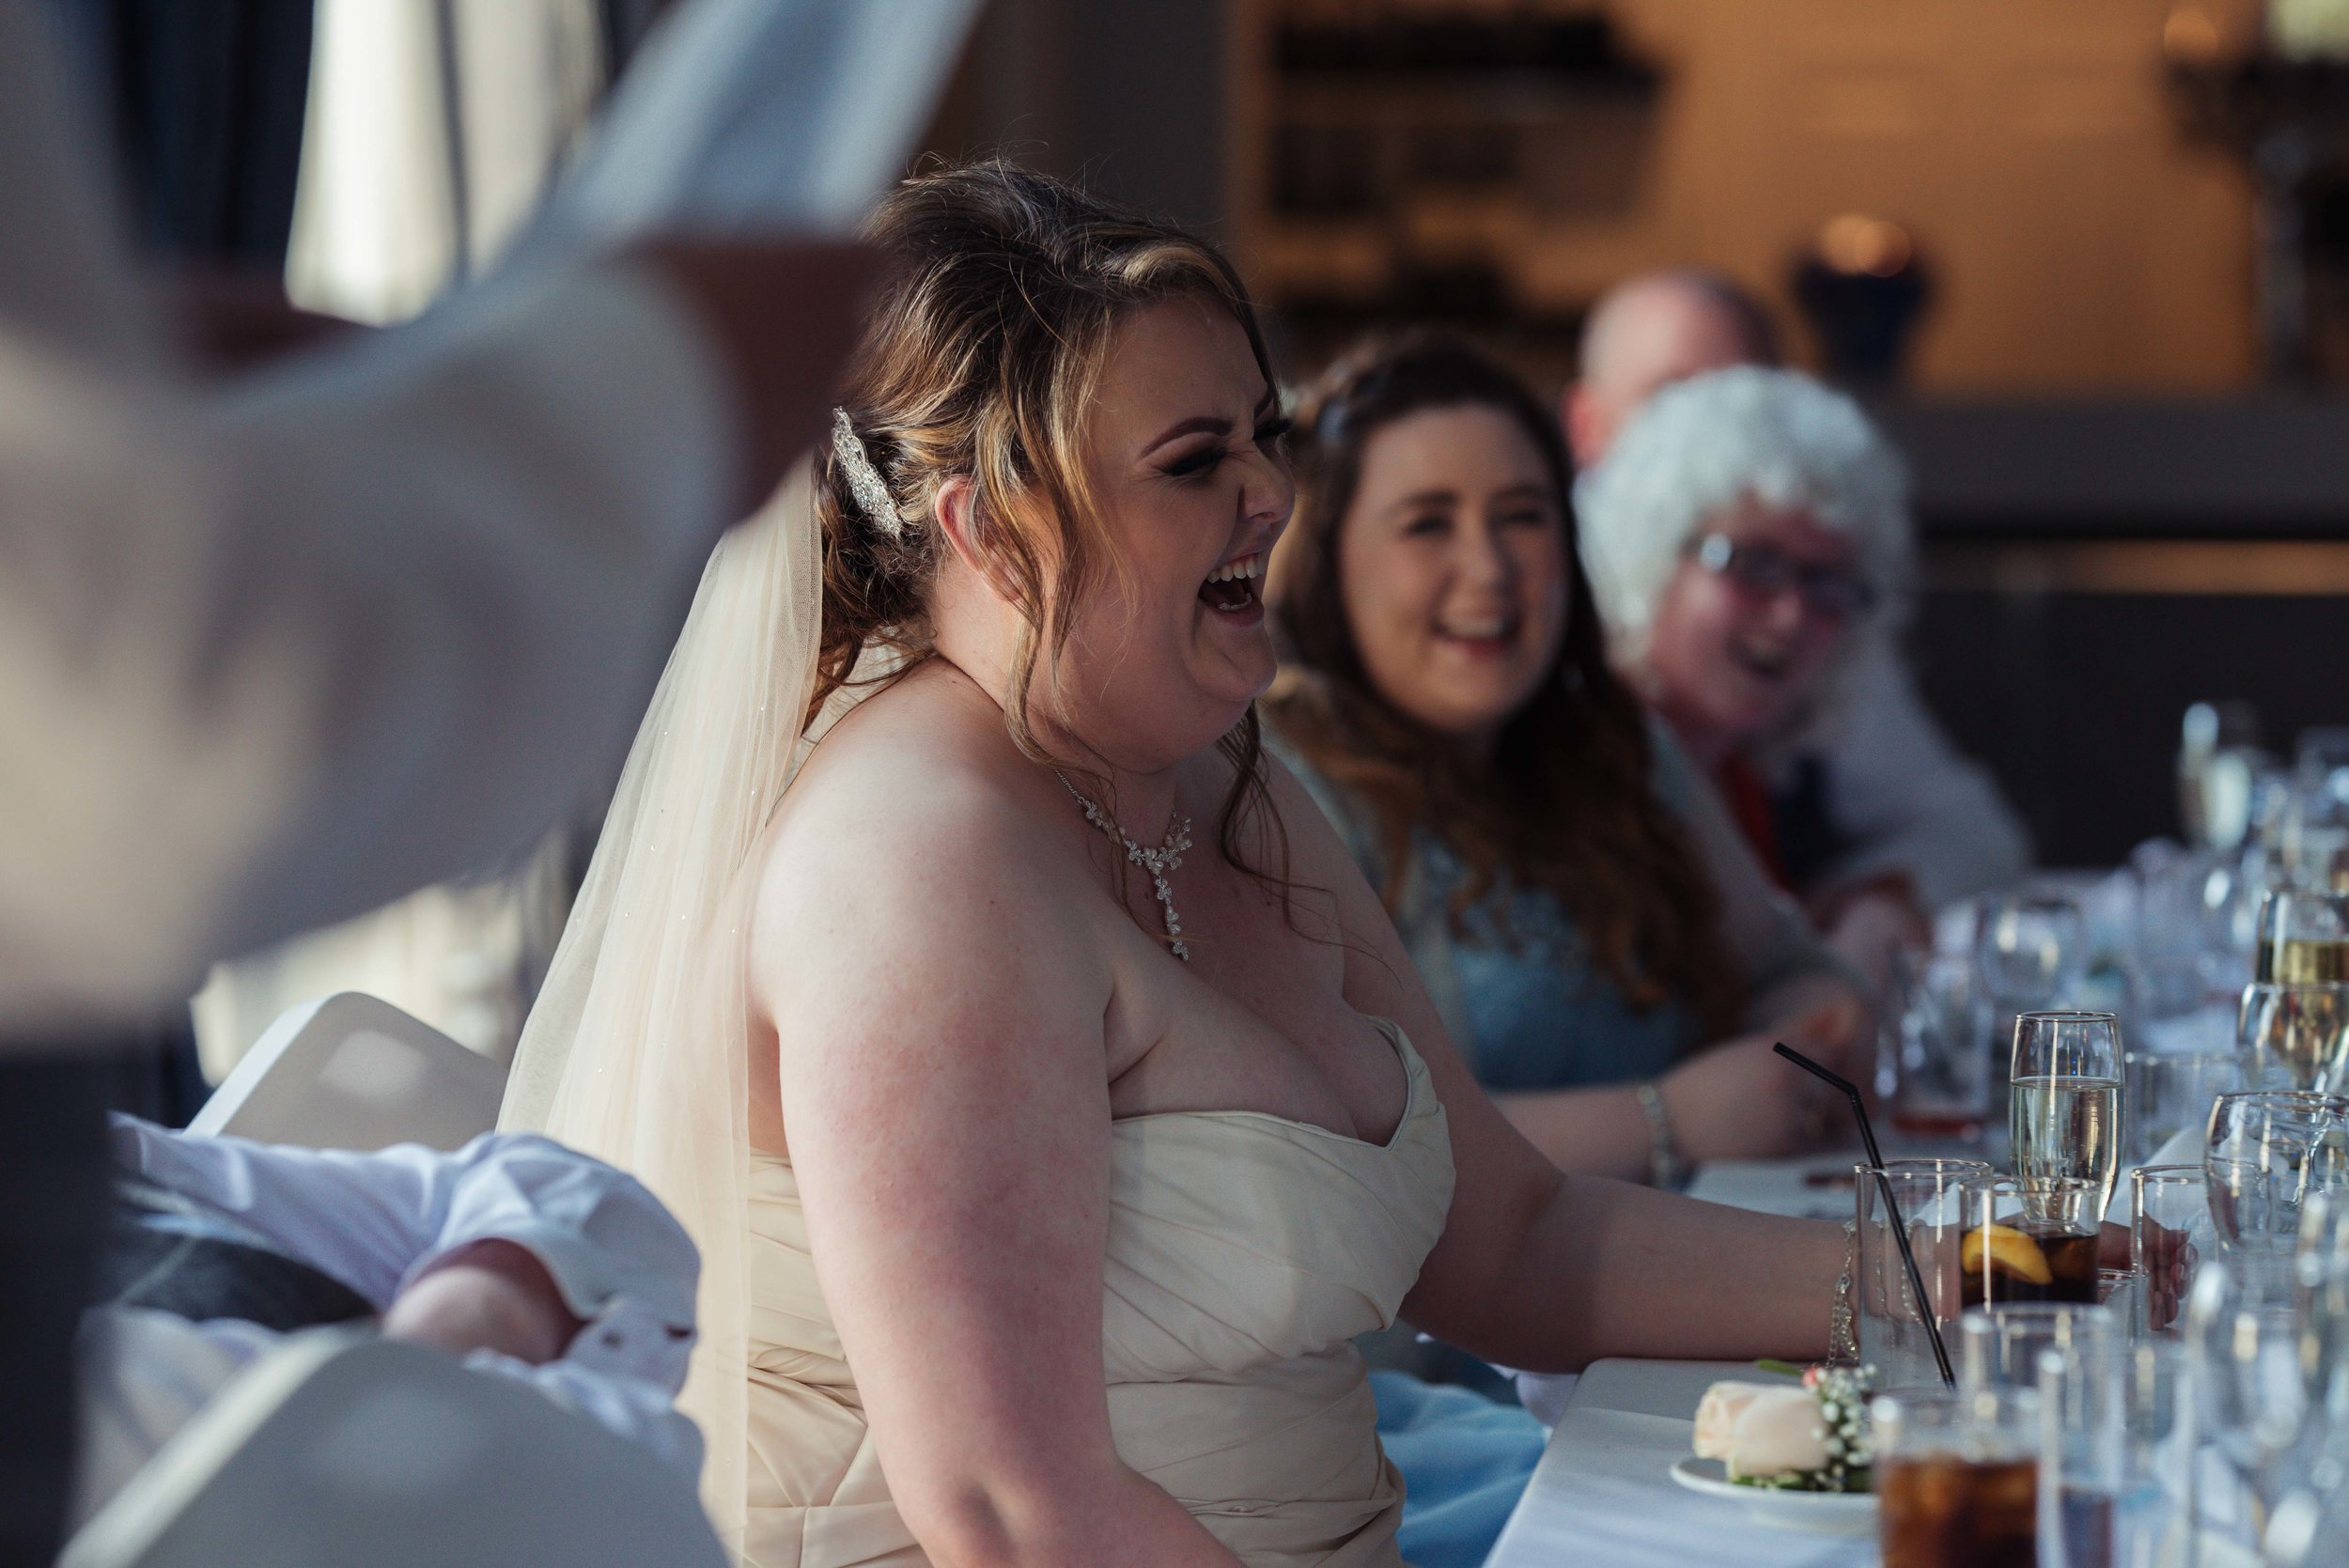 The bride has a huge laugh during one of the wedding soeeches